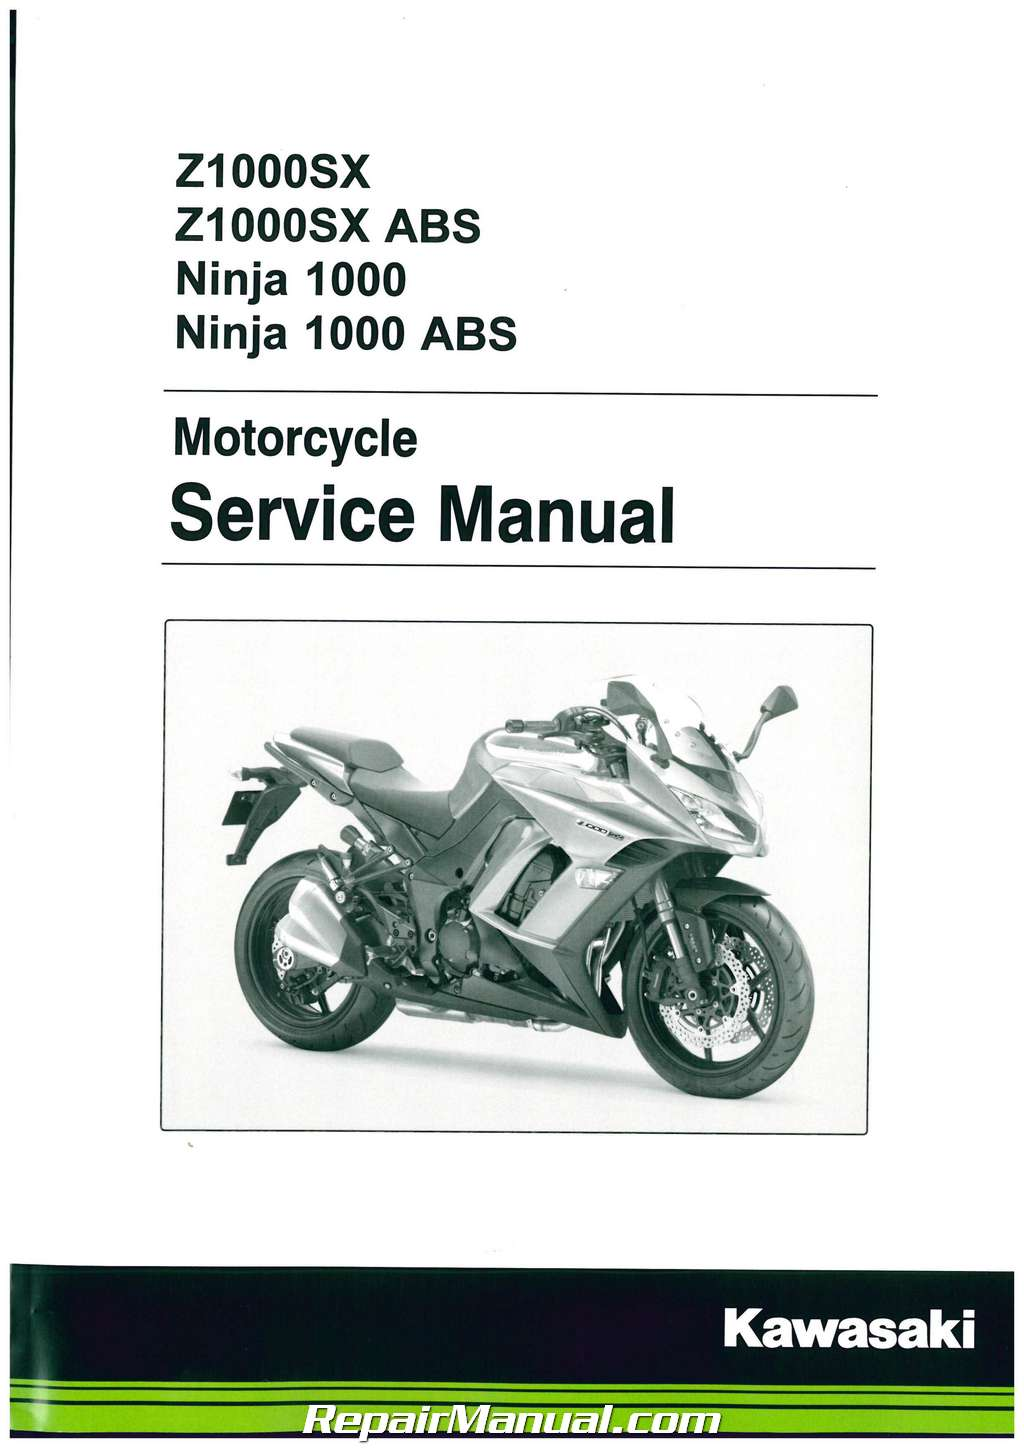 2008 kawasaki zx1000 ninja zx-10r service repair manual.